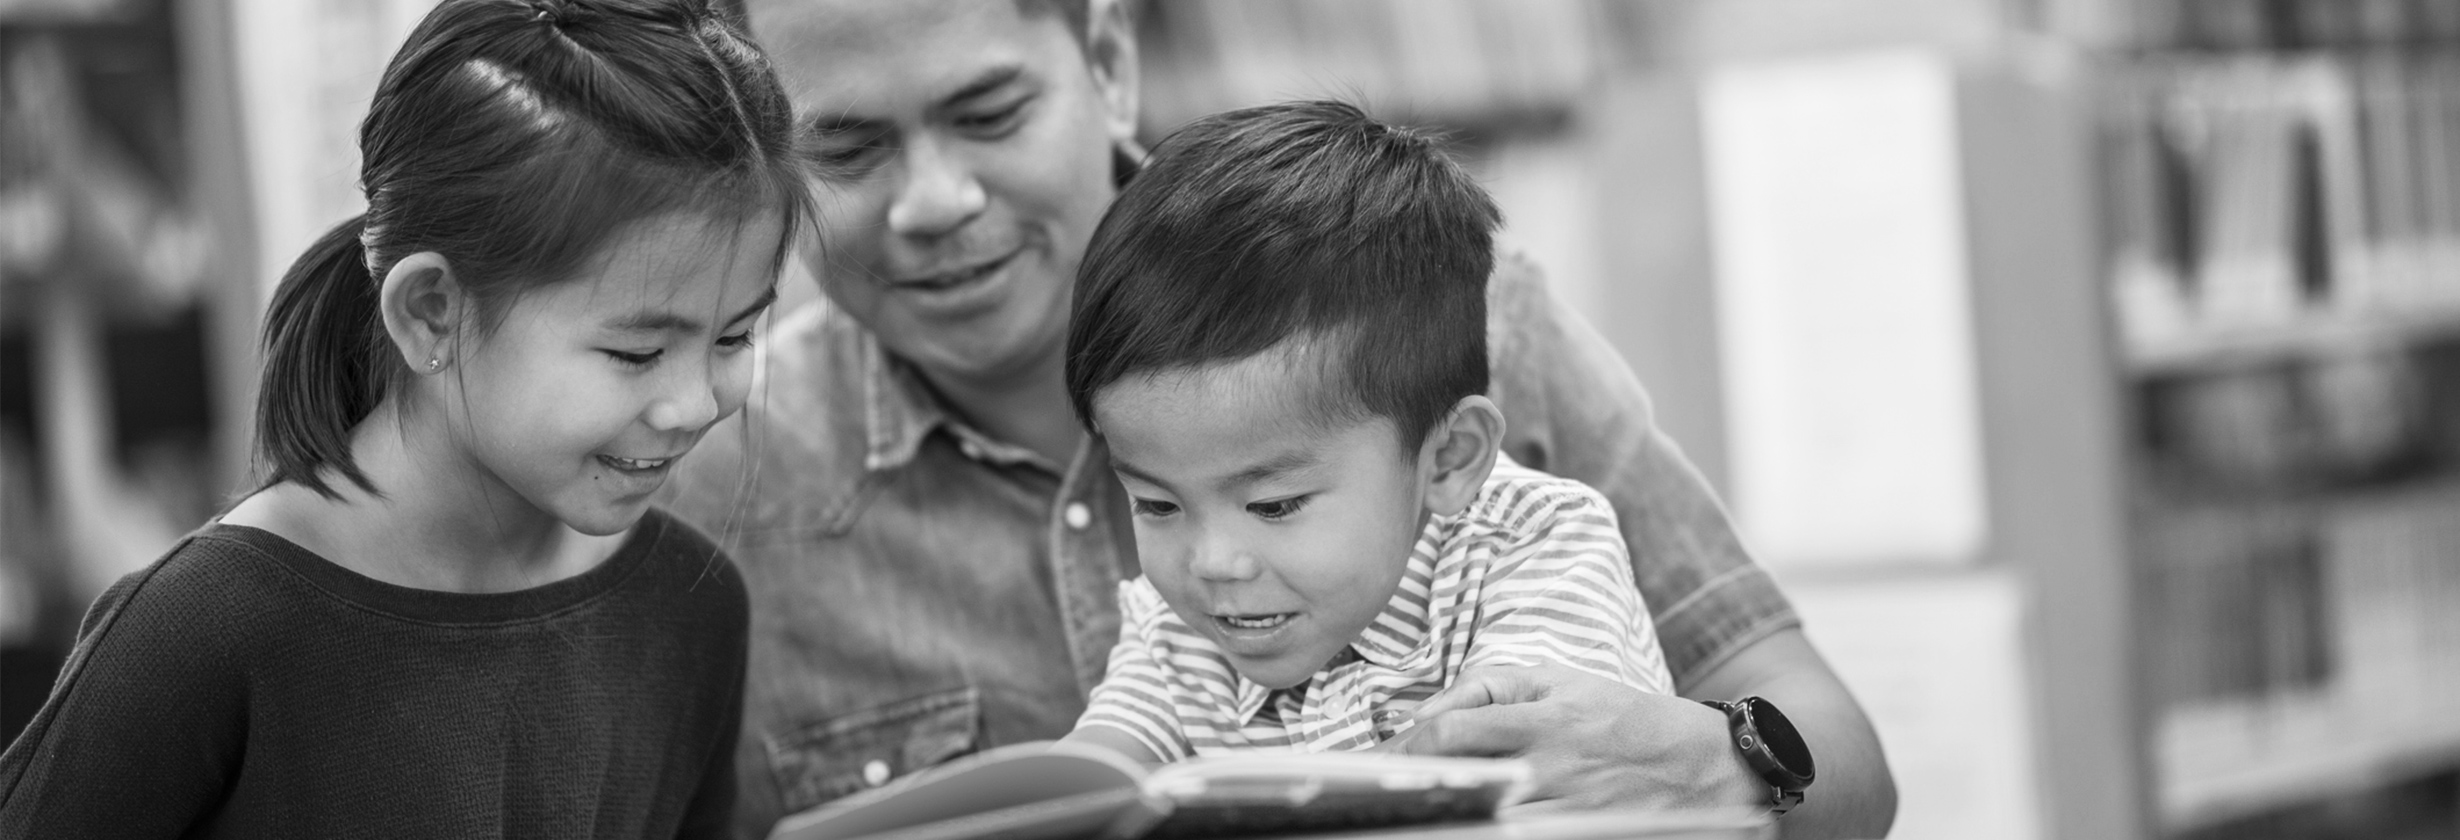 dad reading book with his young daughter and son